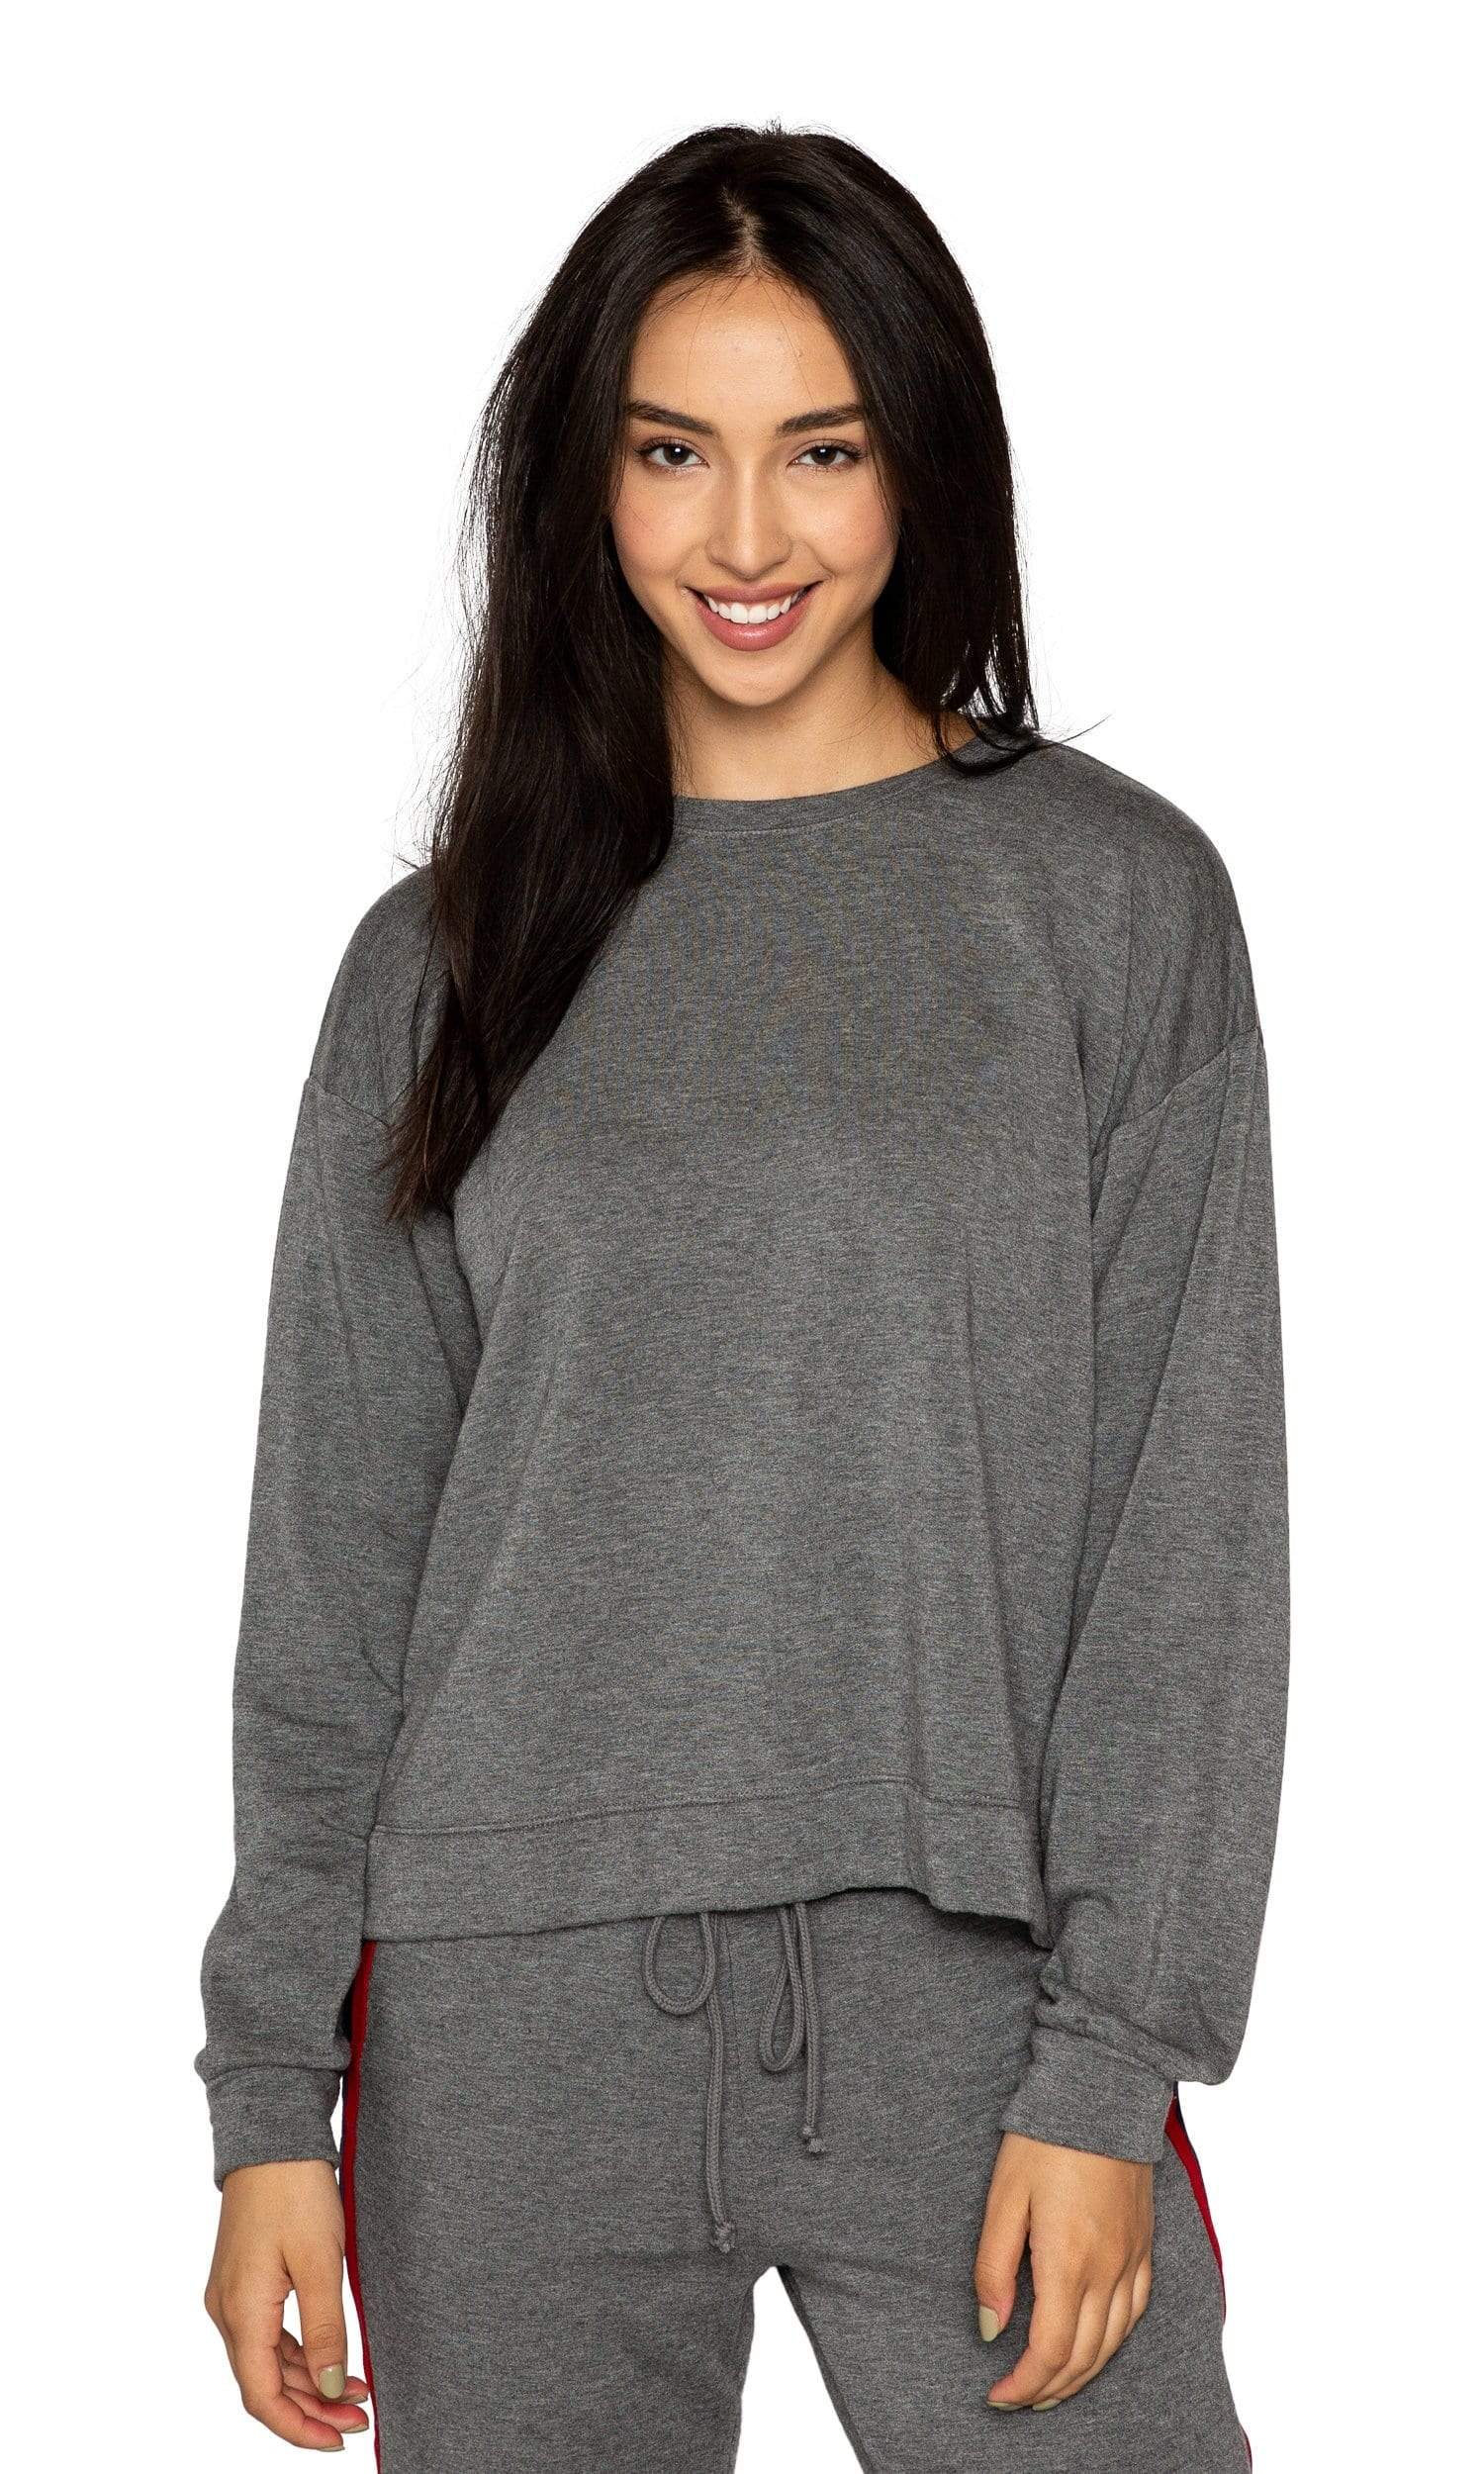 Velvet by Graham & Spencer Danica Striped Crewneck Sweatshirt - Charcoal